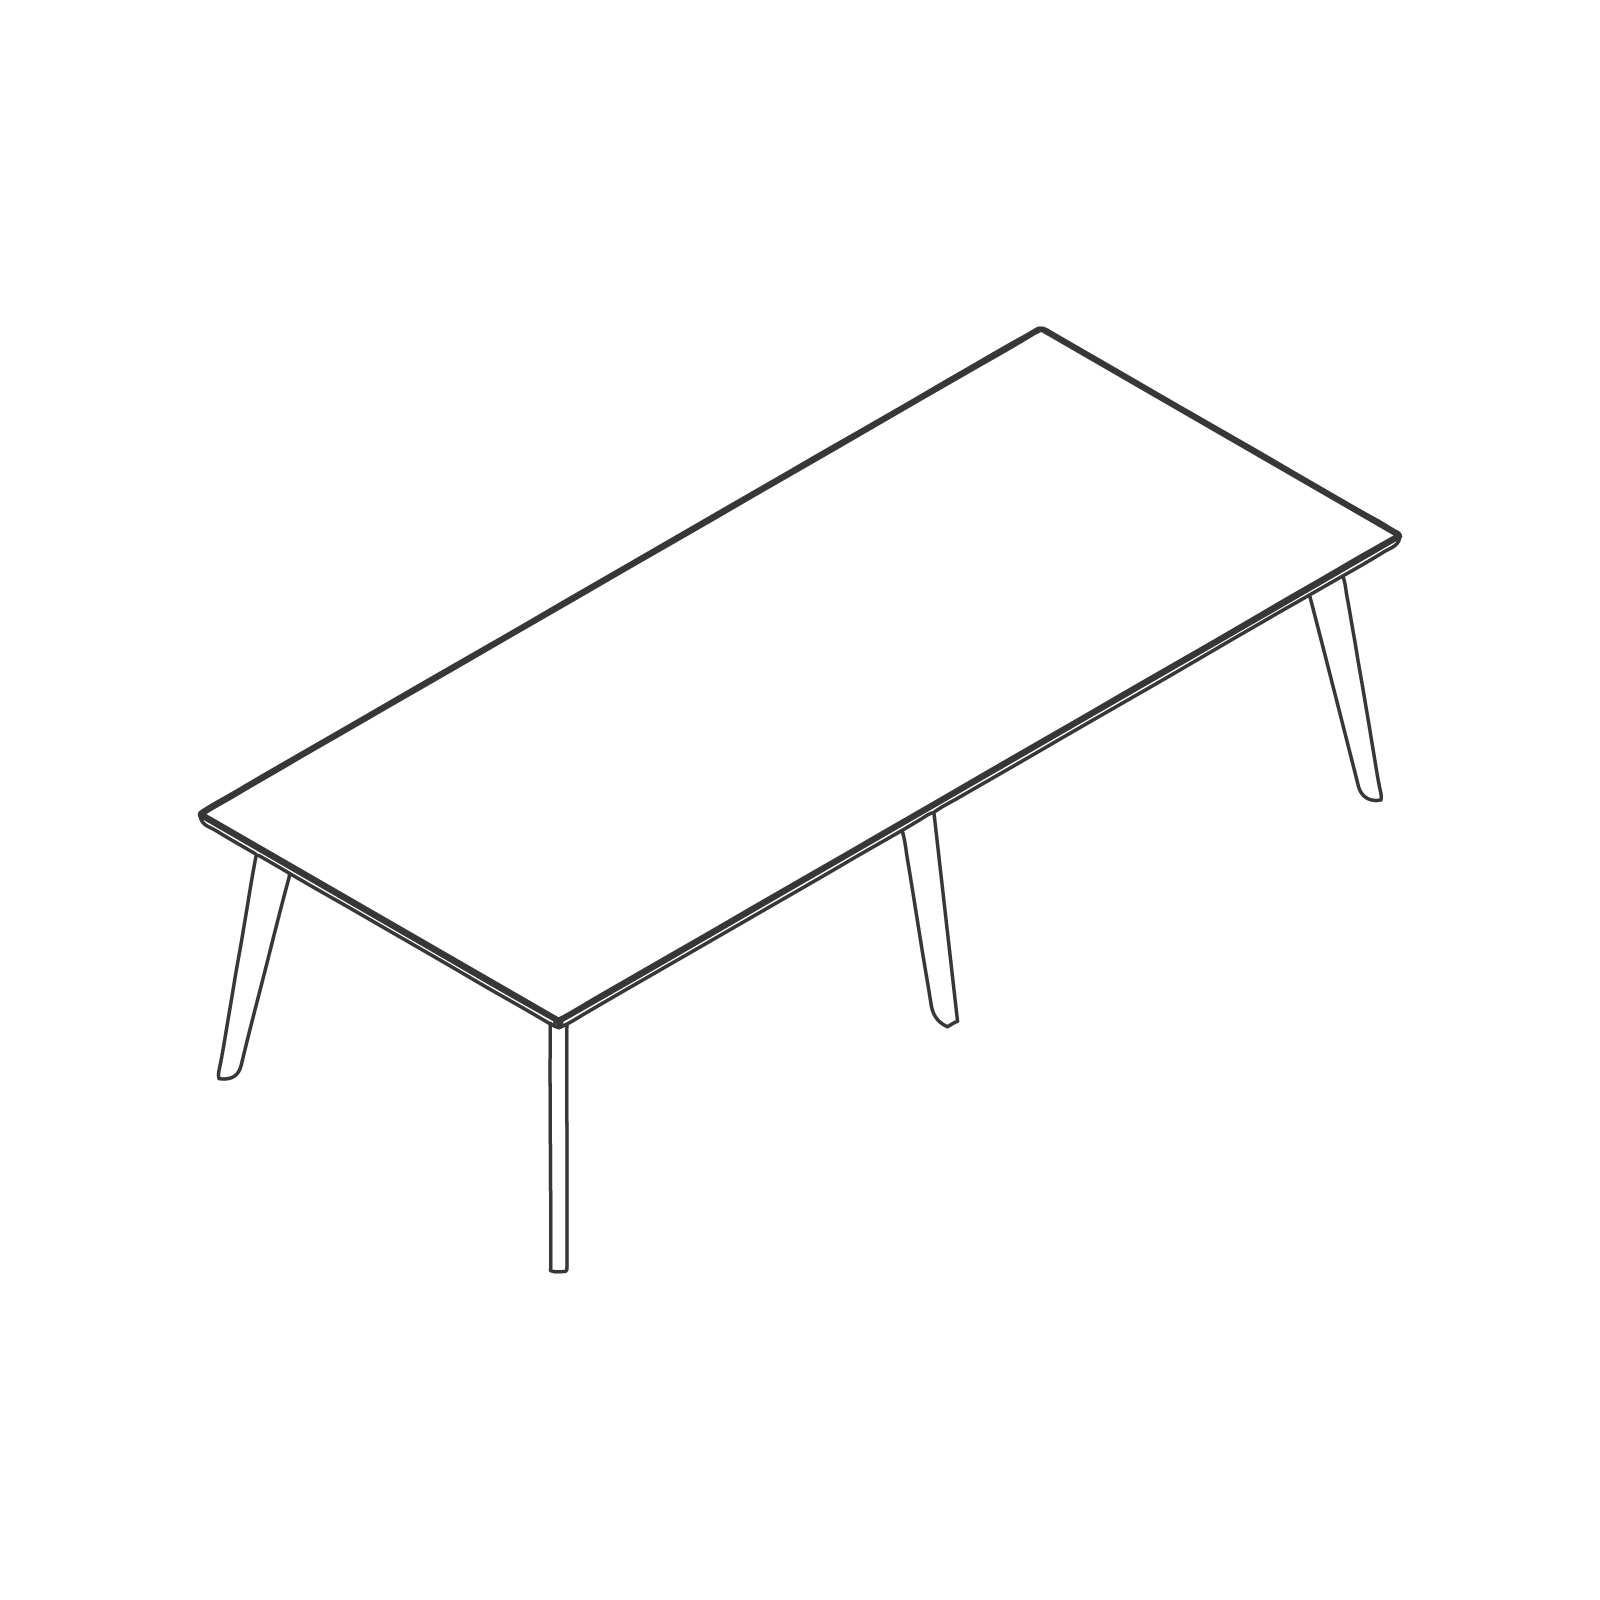 A line drawing of Dalby Conference Table–Rectangular–6 Leg.